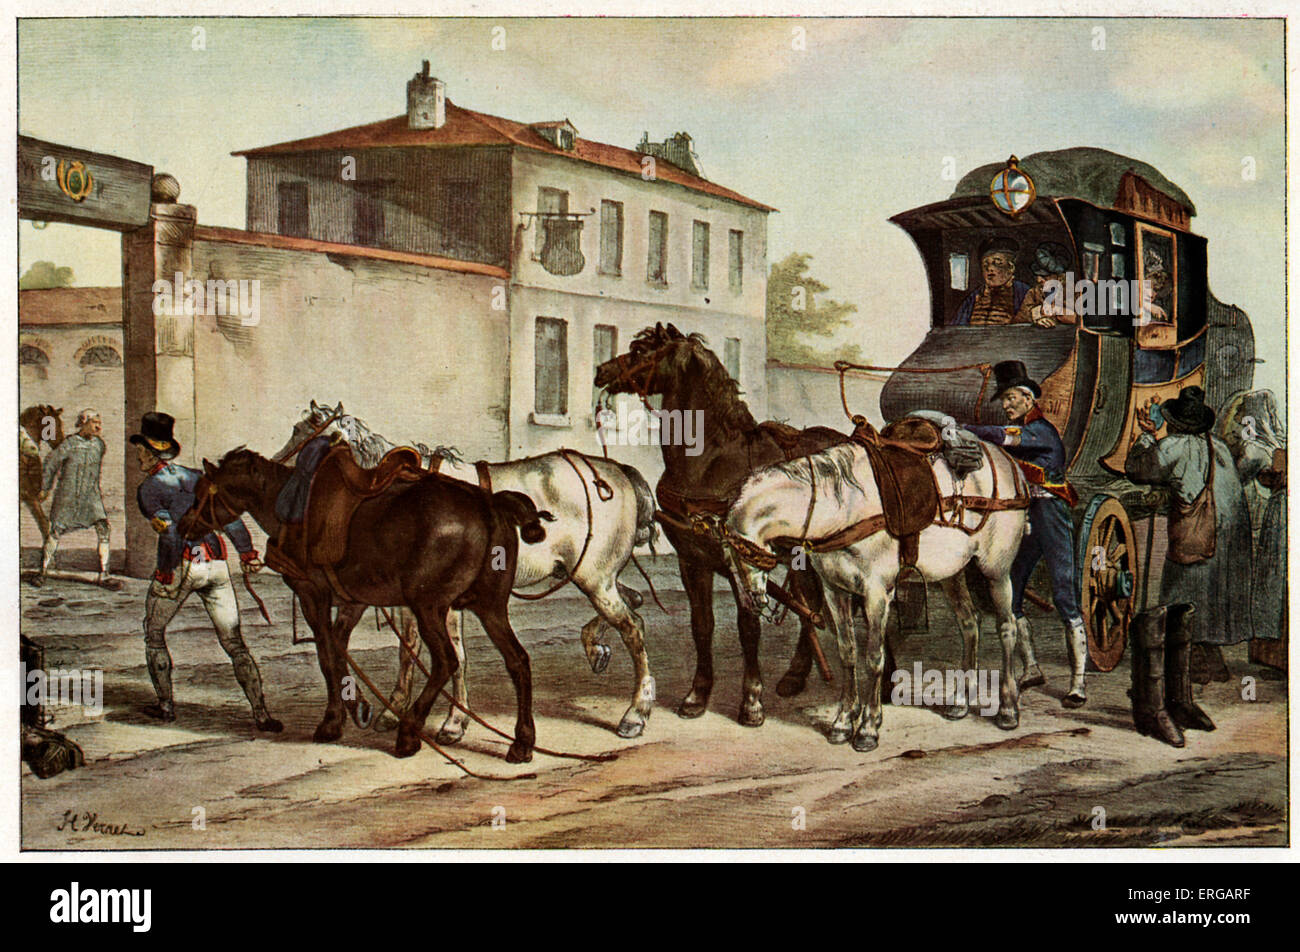 Mail coach at relay station on the road from Paris to Calais, ca 1825. After H. Vernet. - Stock Image